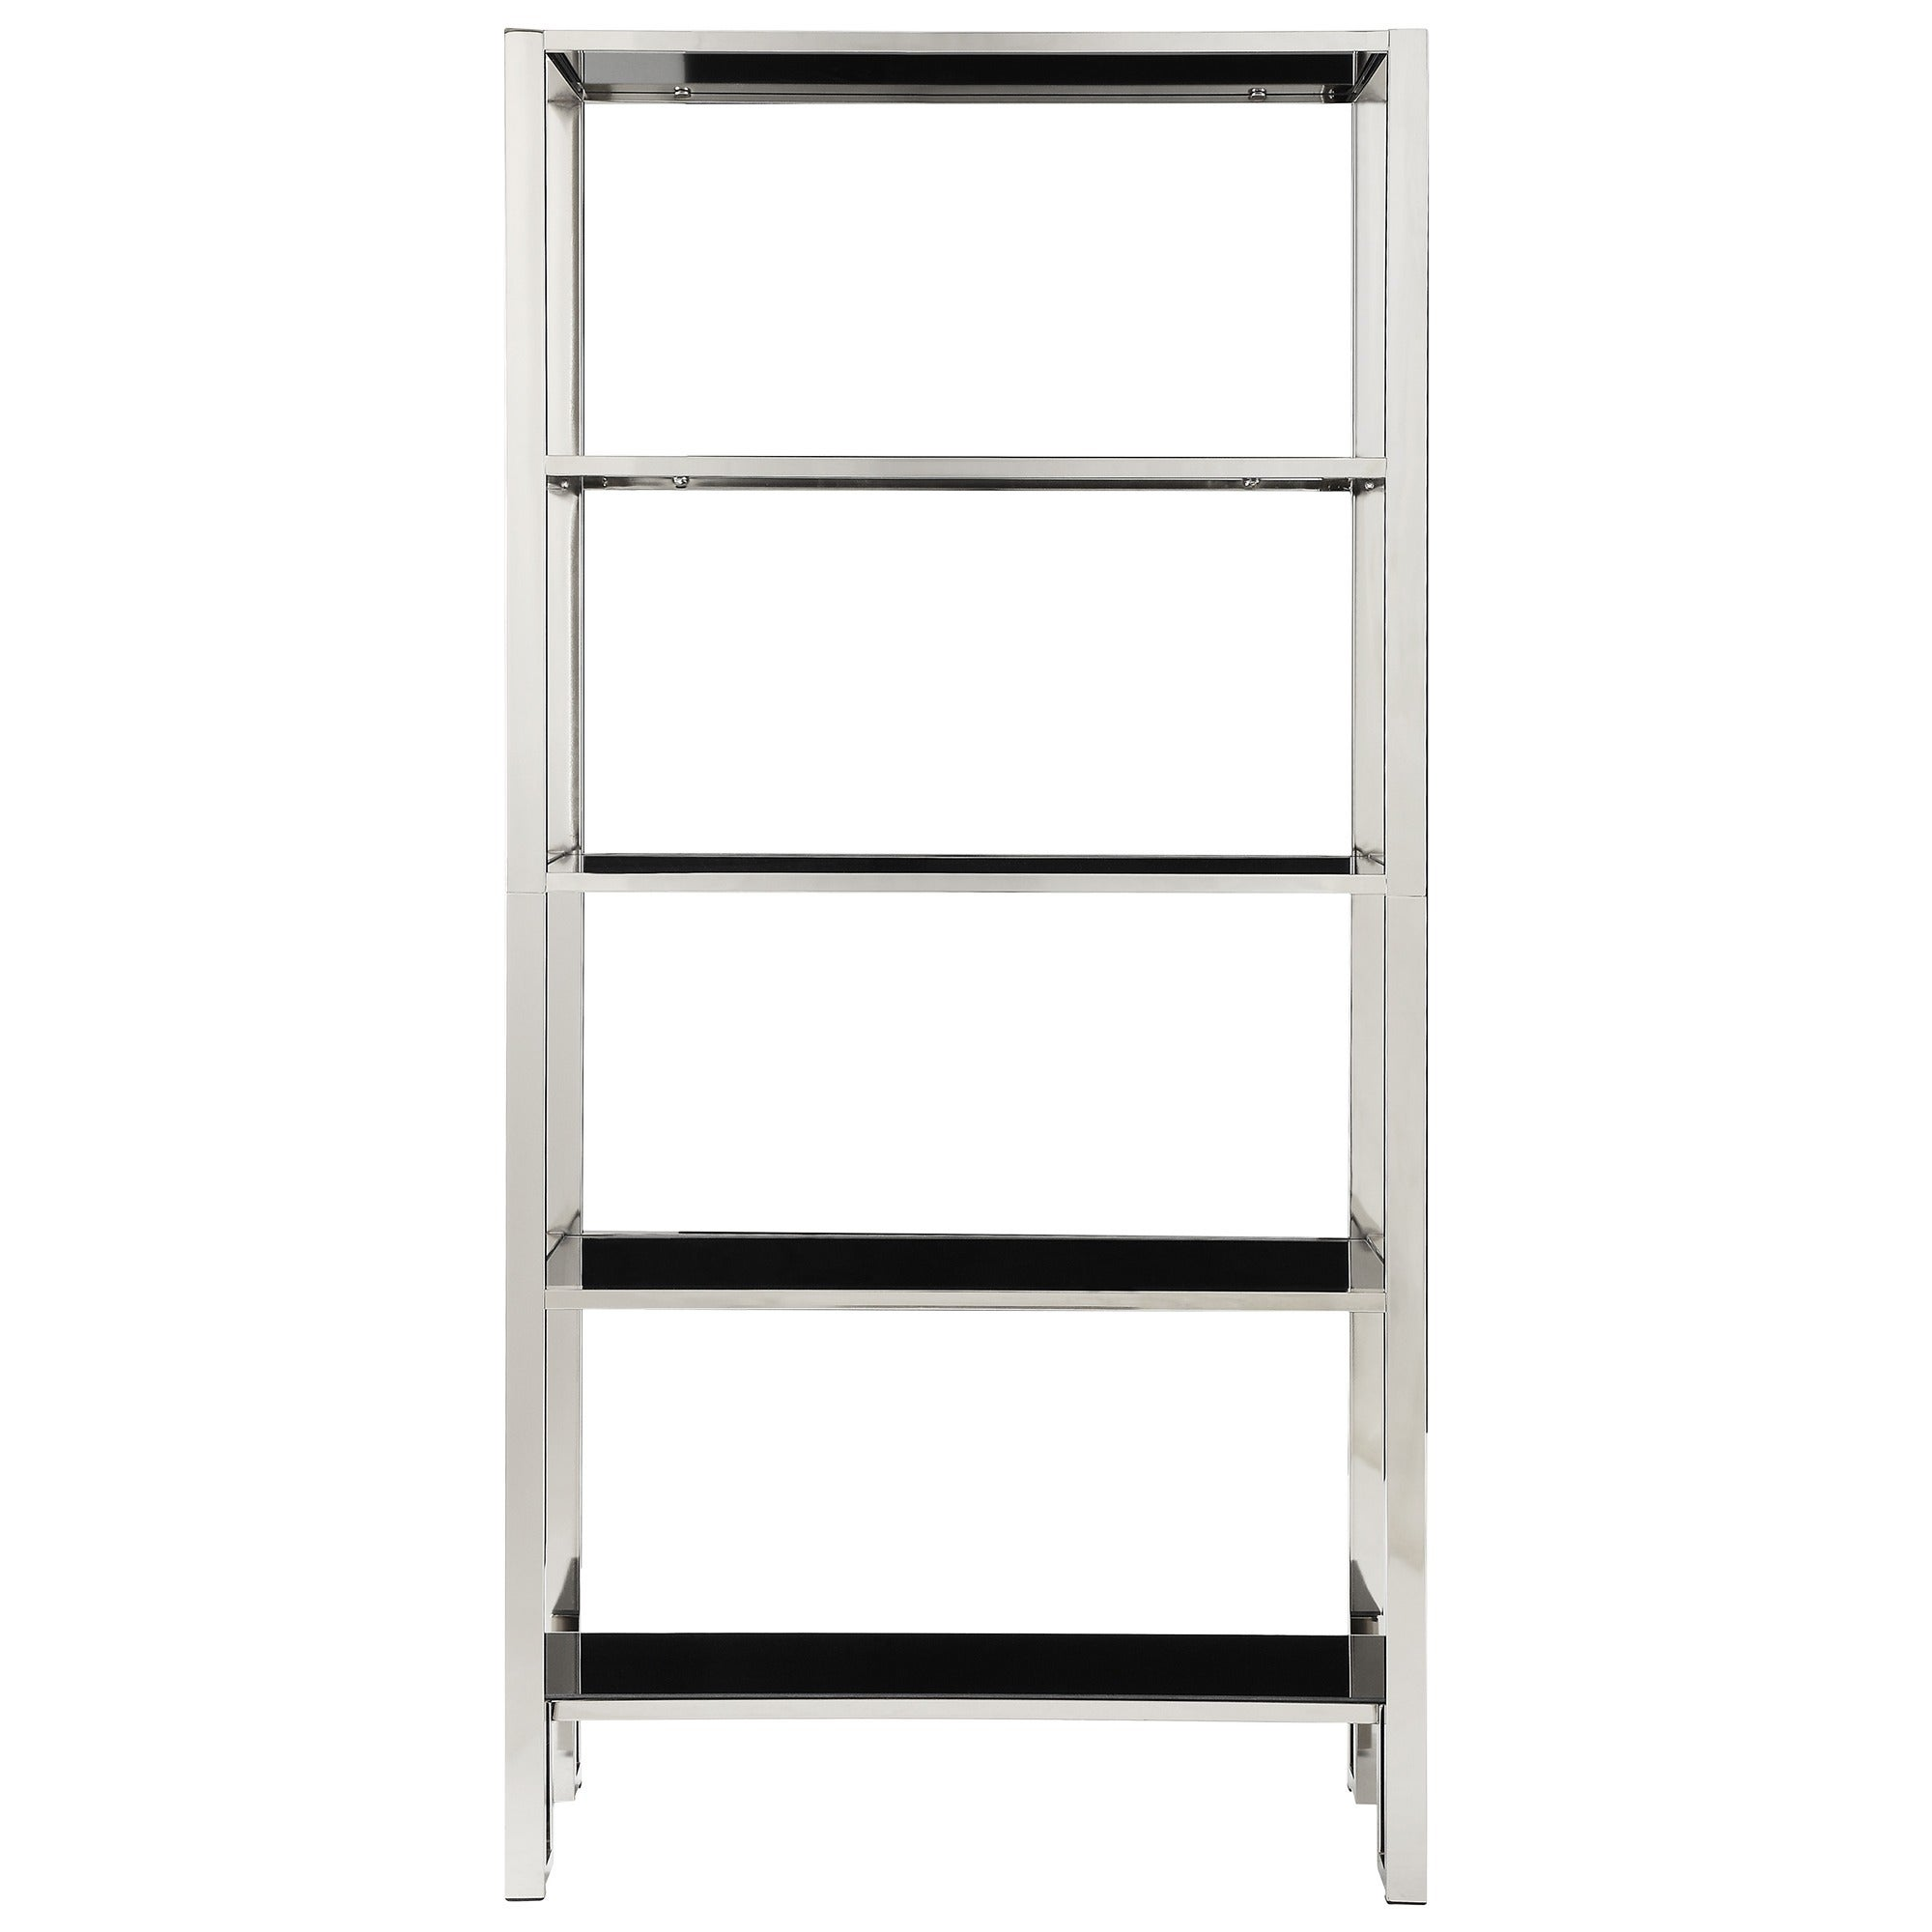 Alta Vista Black And Chrome Metal Single Shelving Bookcase By Inspire Q Bold Free Shipping Today 17126208